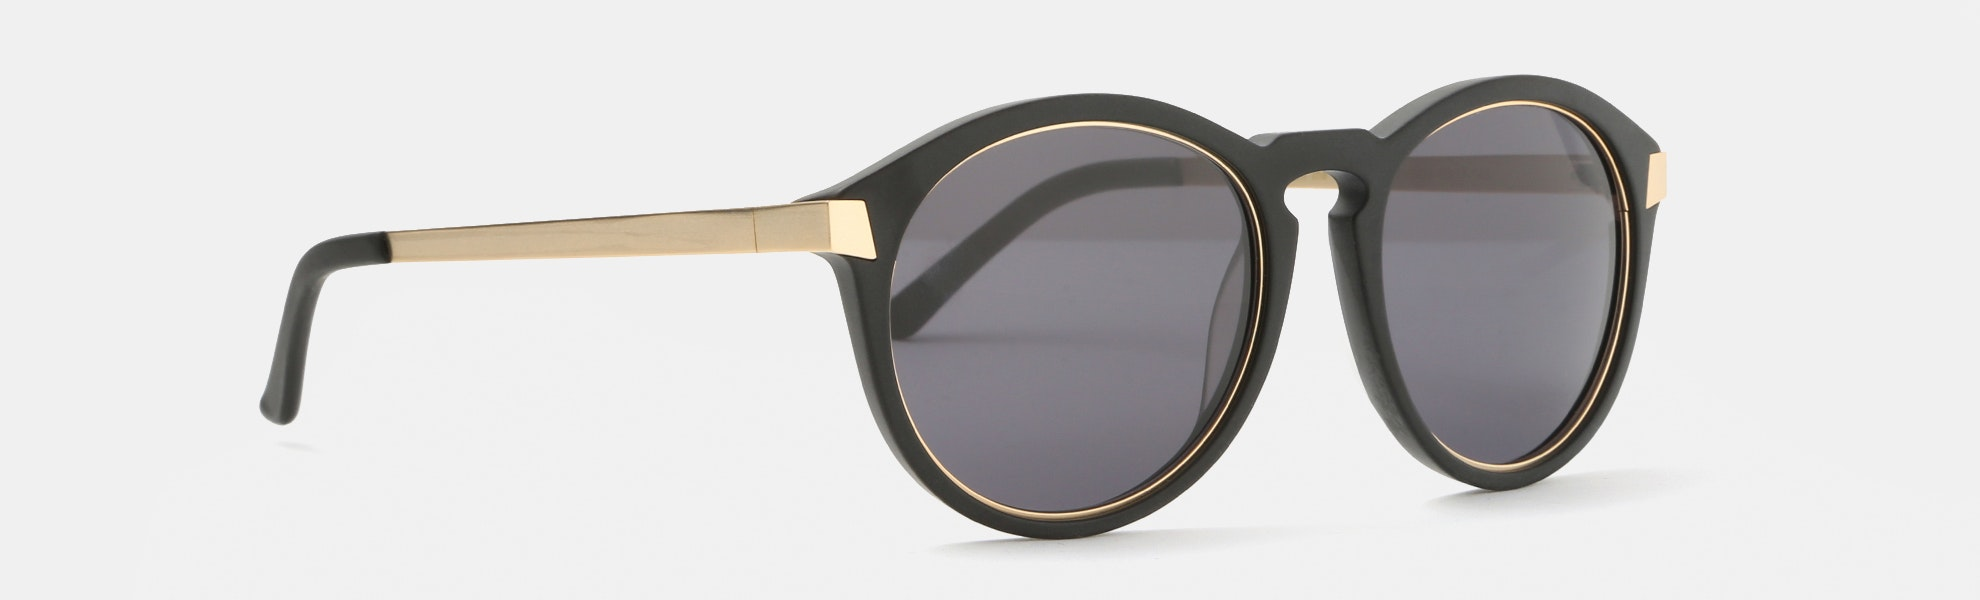 Vint & York On the Up & Up Sunglasses